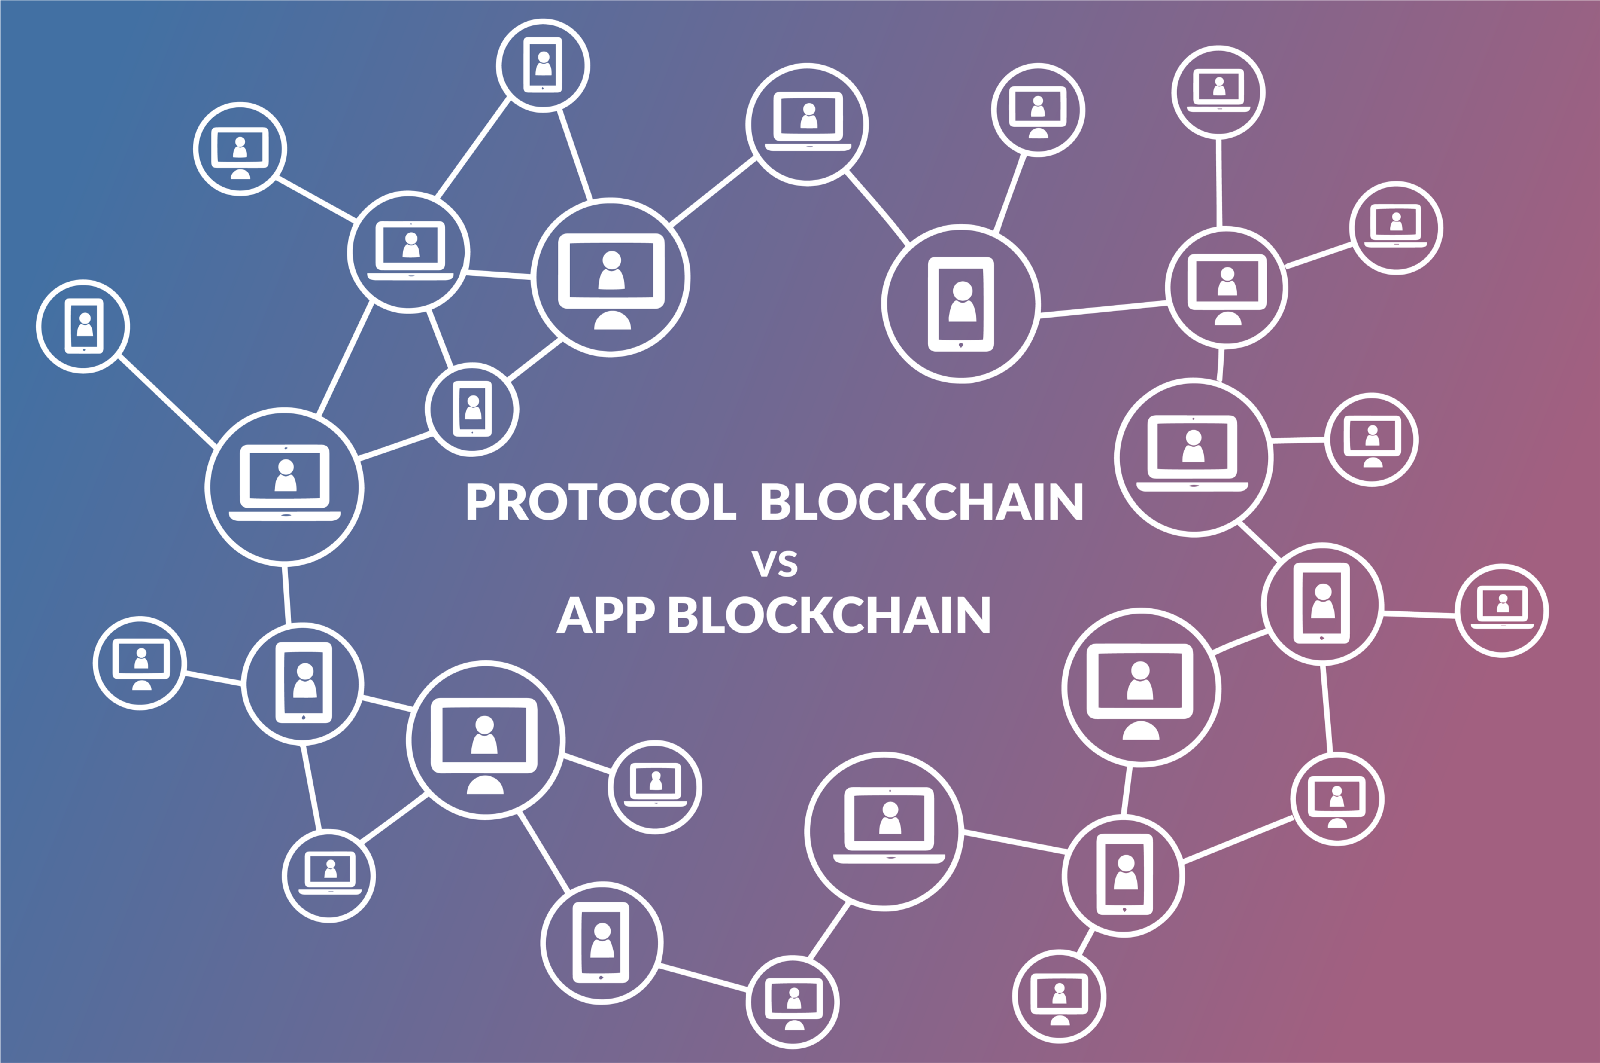 /differences-between-protocol-blockchain-and-app-blockchain-companies-802b699eccde feature image